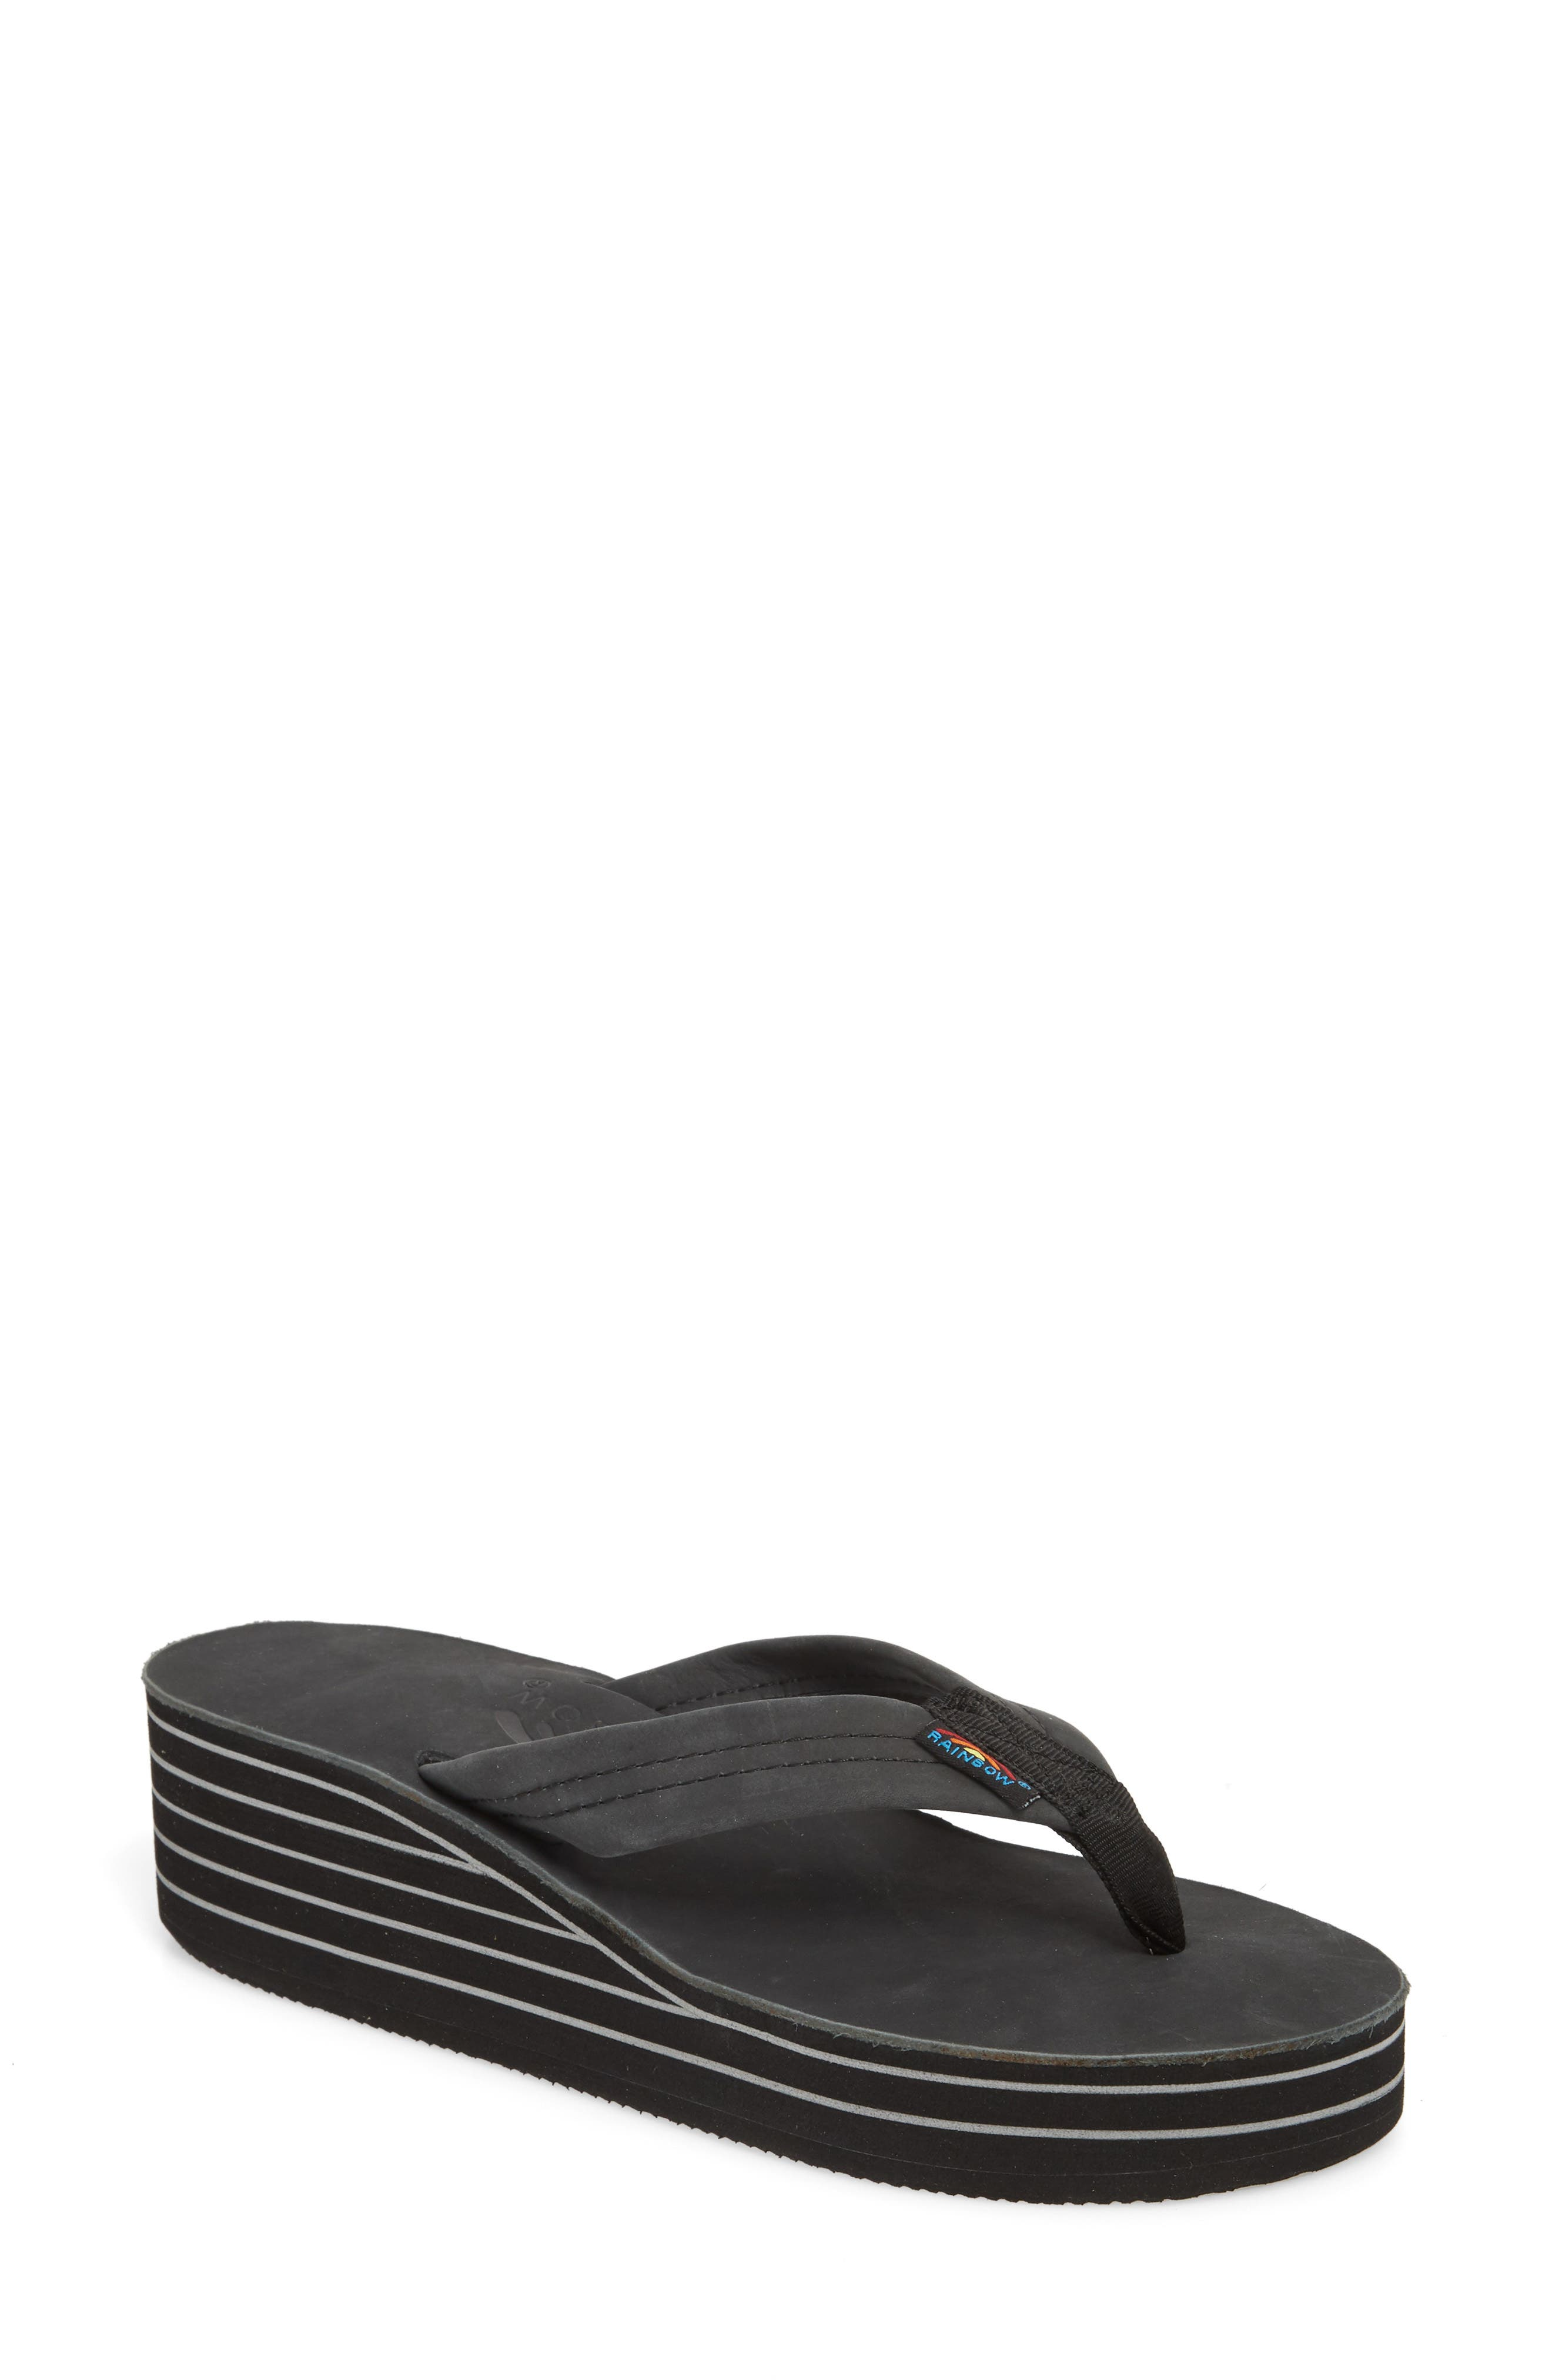 Rainbow 6-Layer Wedge Flip Flop (Women)